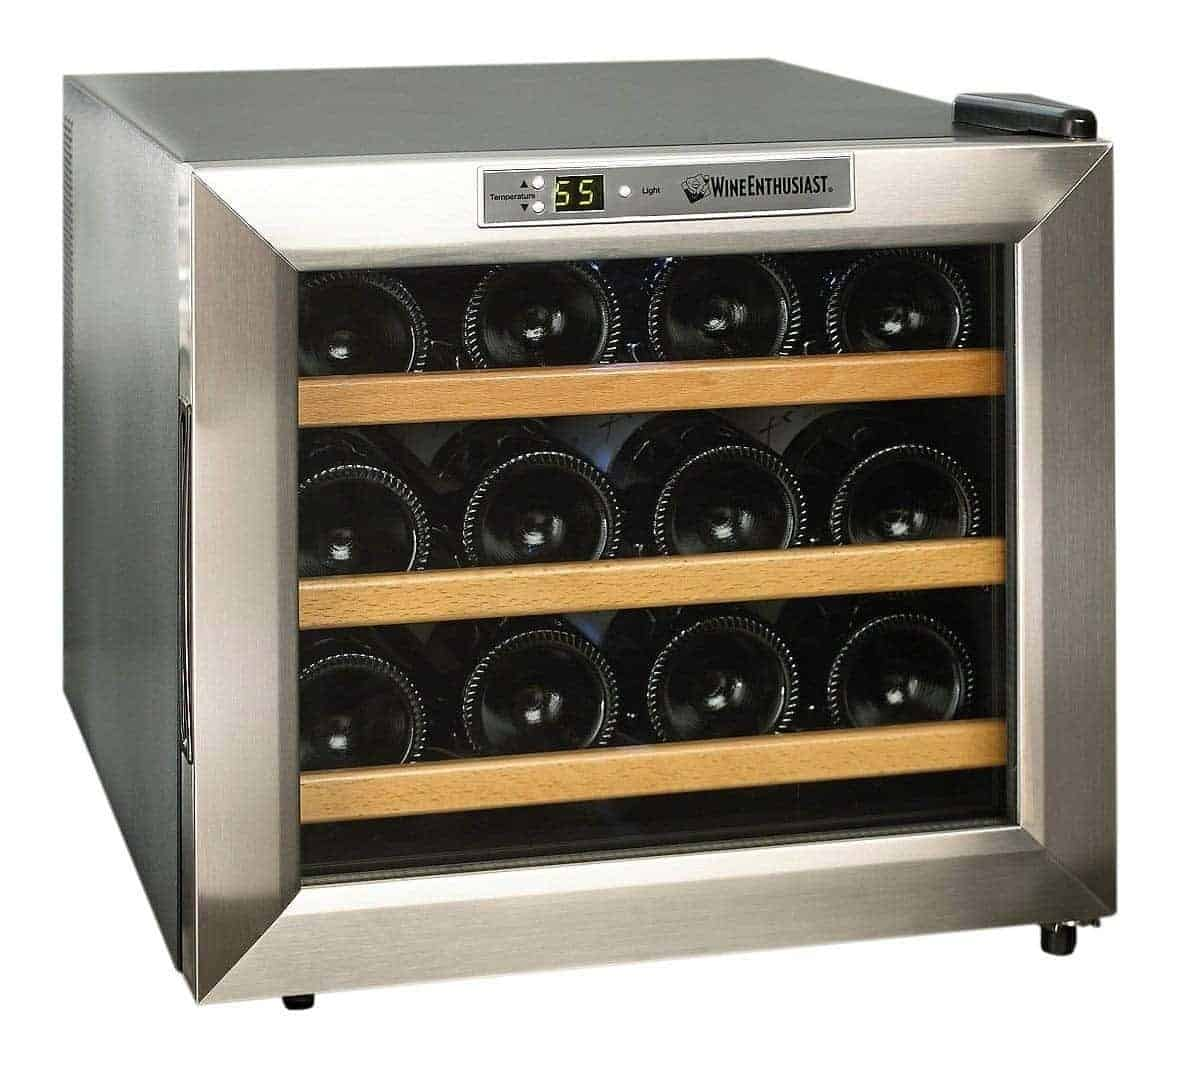 Wine Enthusiast 272 02 13W Stainless Steel/Wood Shelves Silent 12-Bottle Wine Cooler